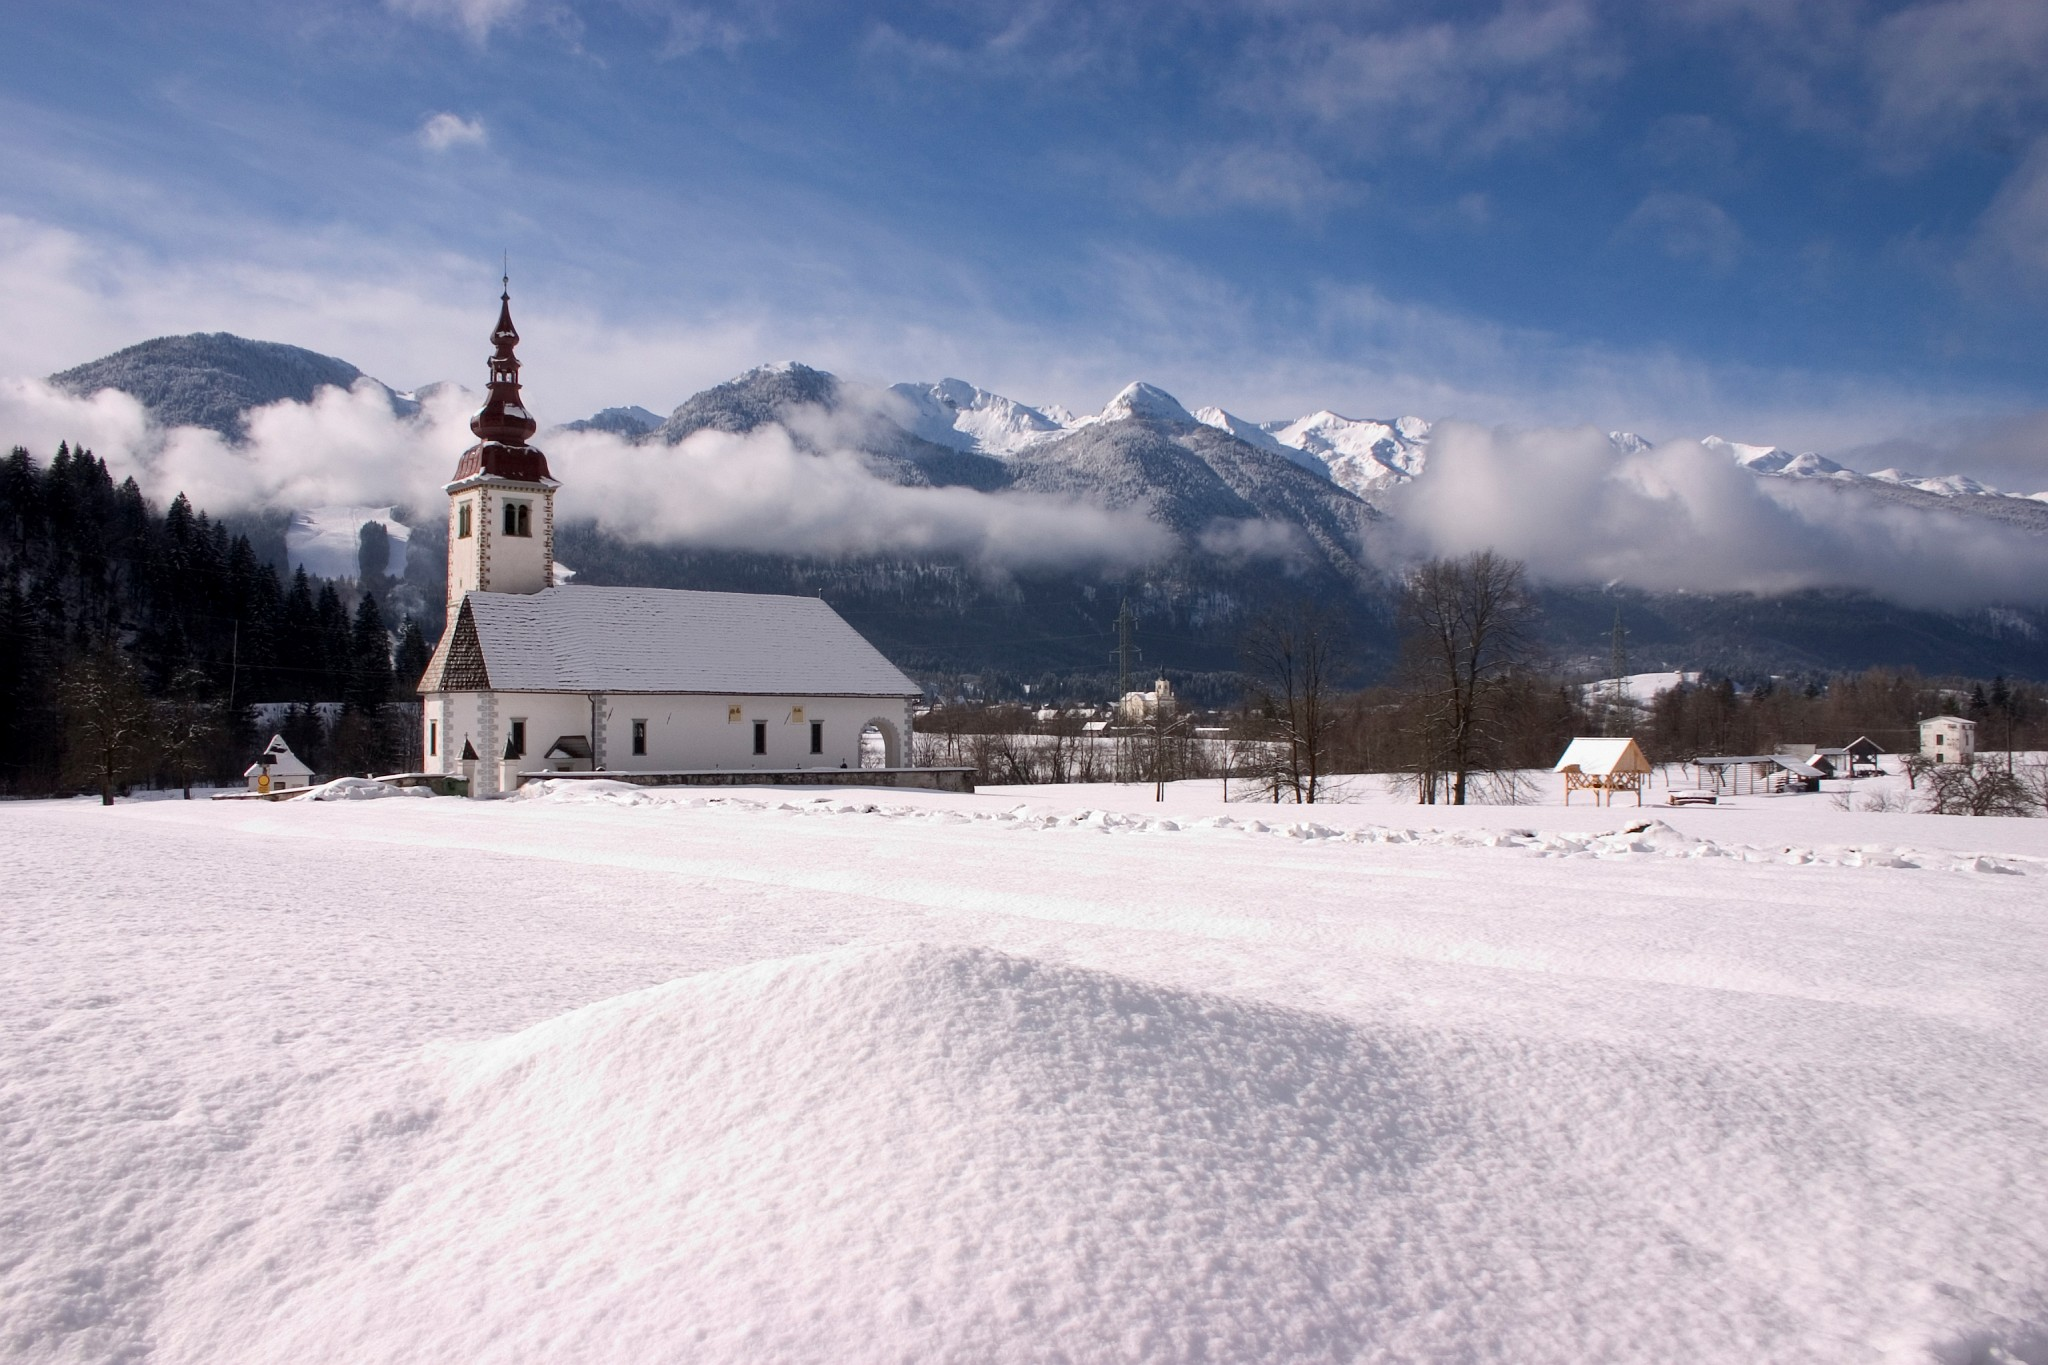 Winter view of the church of the assumption of Mary in Bitnje, a village just outside Bohinjska Bistrica, Bohinj valley, Triglav National Park, Slovenia. You can also see the Church of Saint Nicholos in Bohinjska Bistrica in the background.